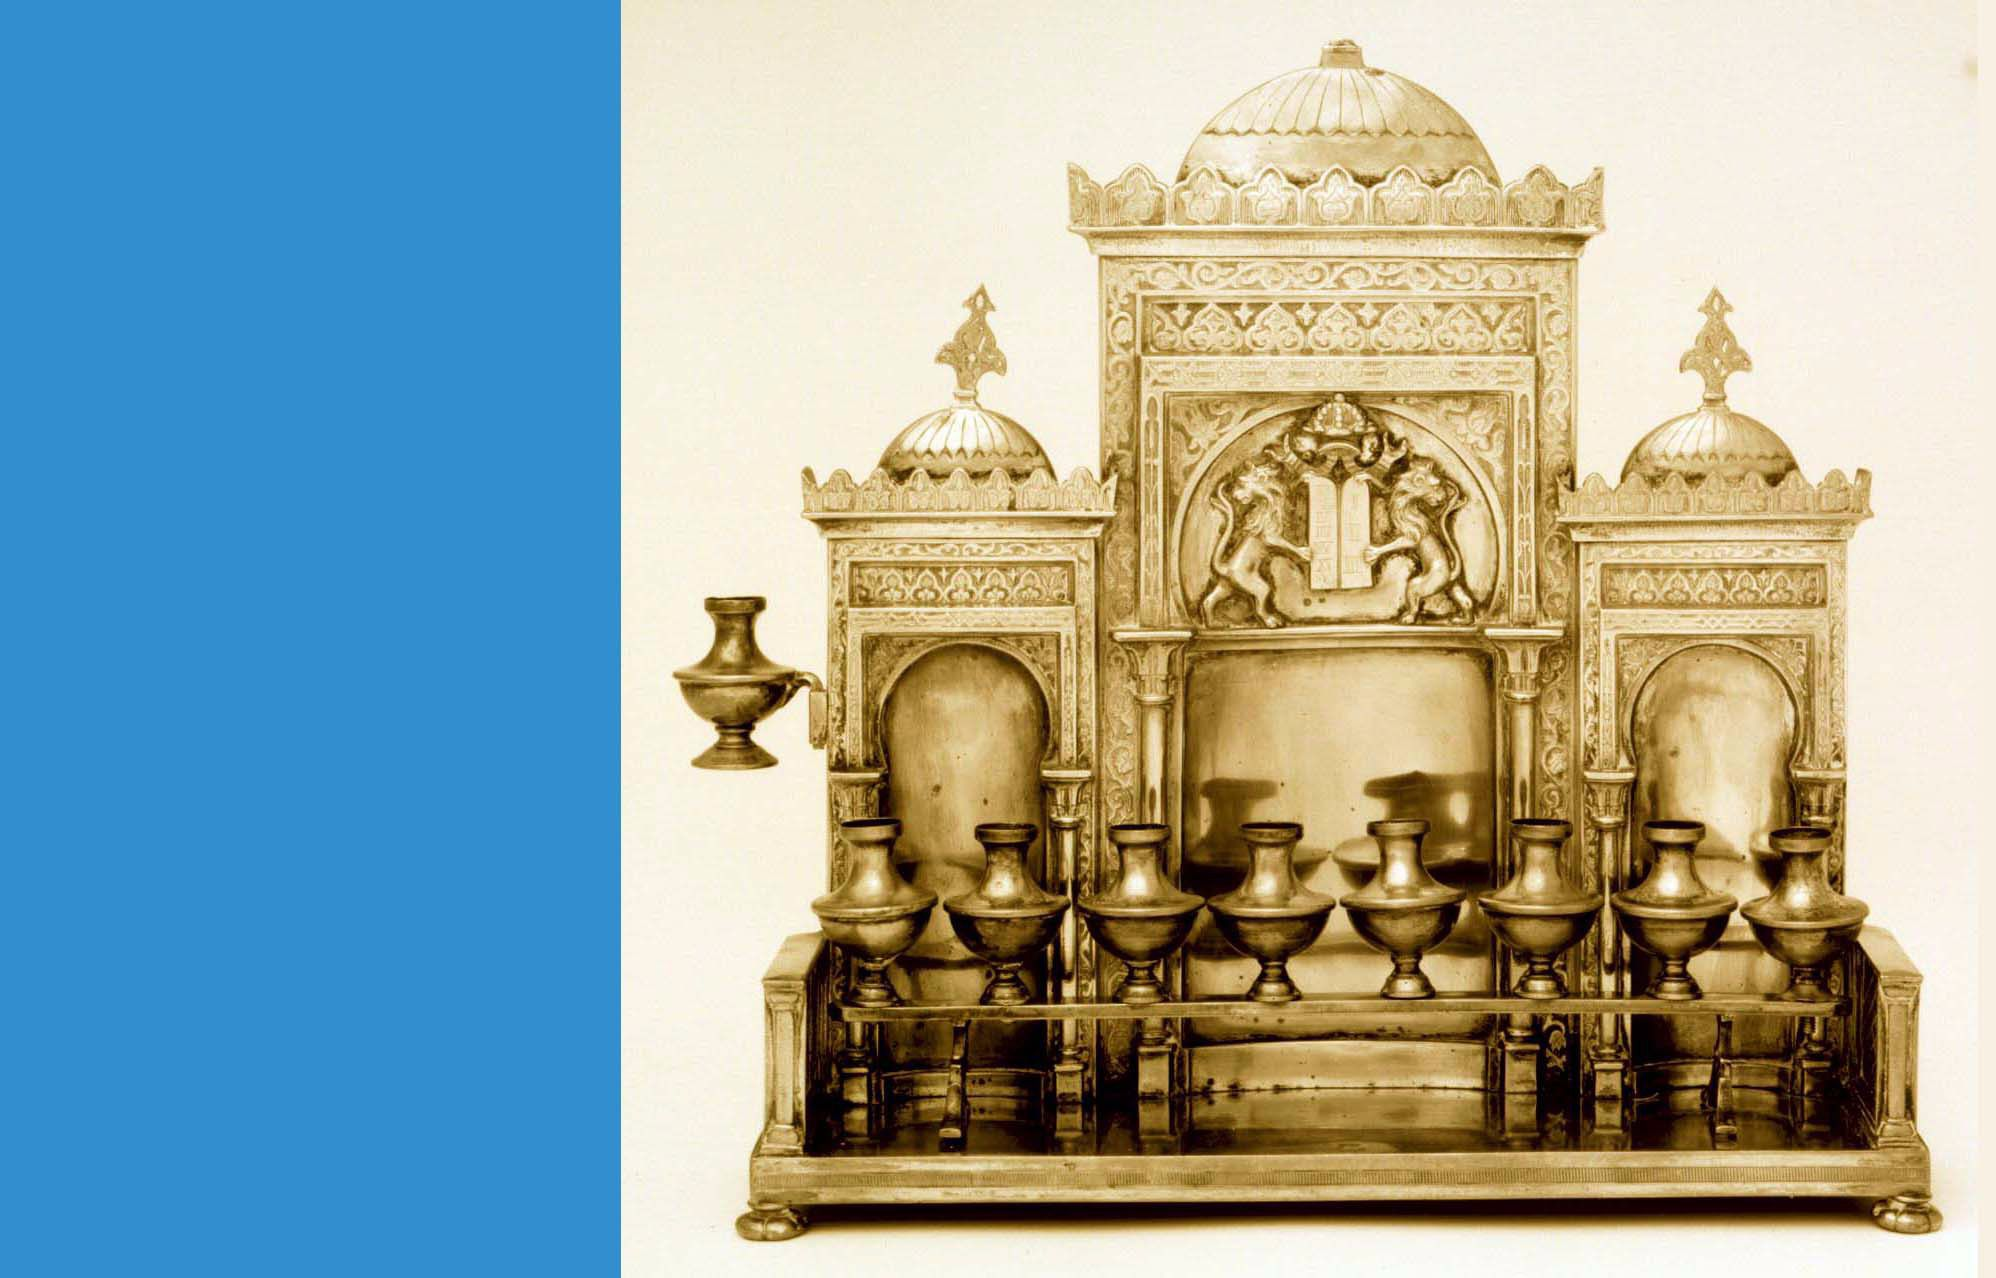 Cincinnati Bound: A late 19th Century brass menorah, probably made somewhere in the Austro-Hungarian empire, is part of the Klutznik Museum collection.